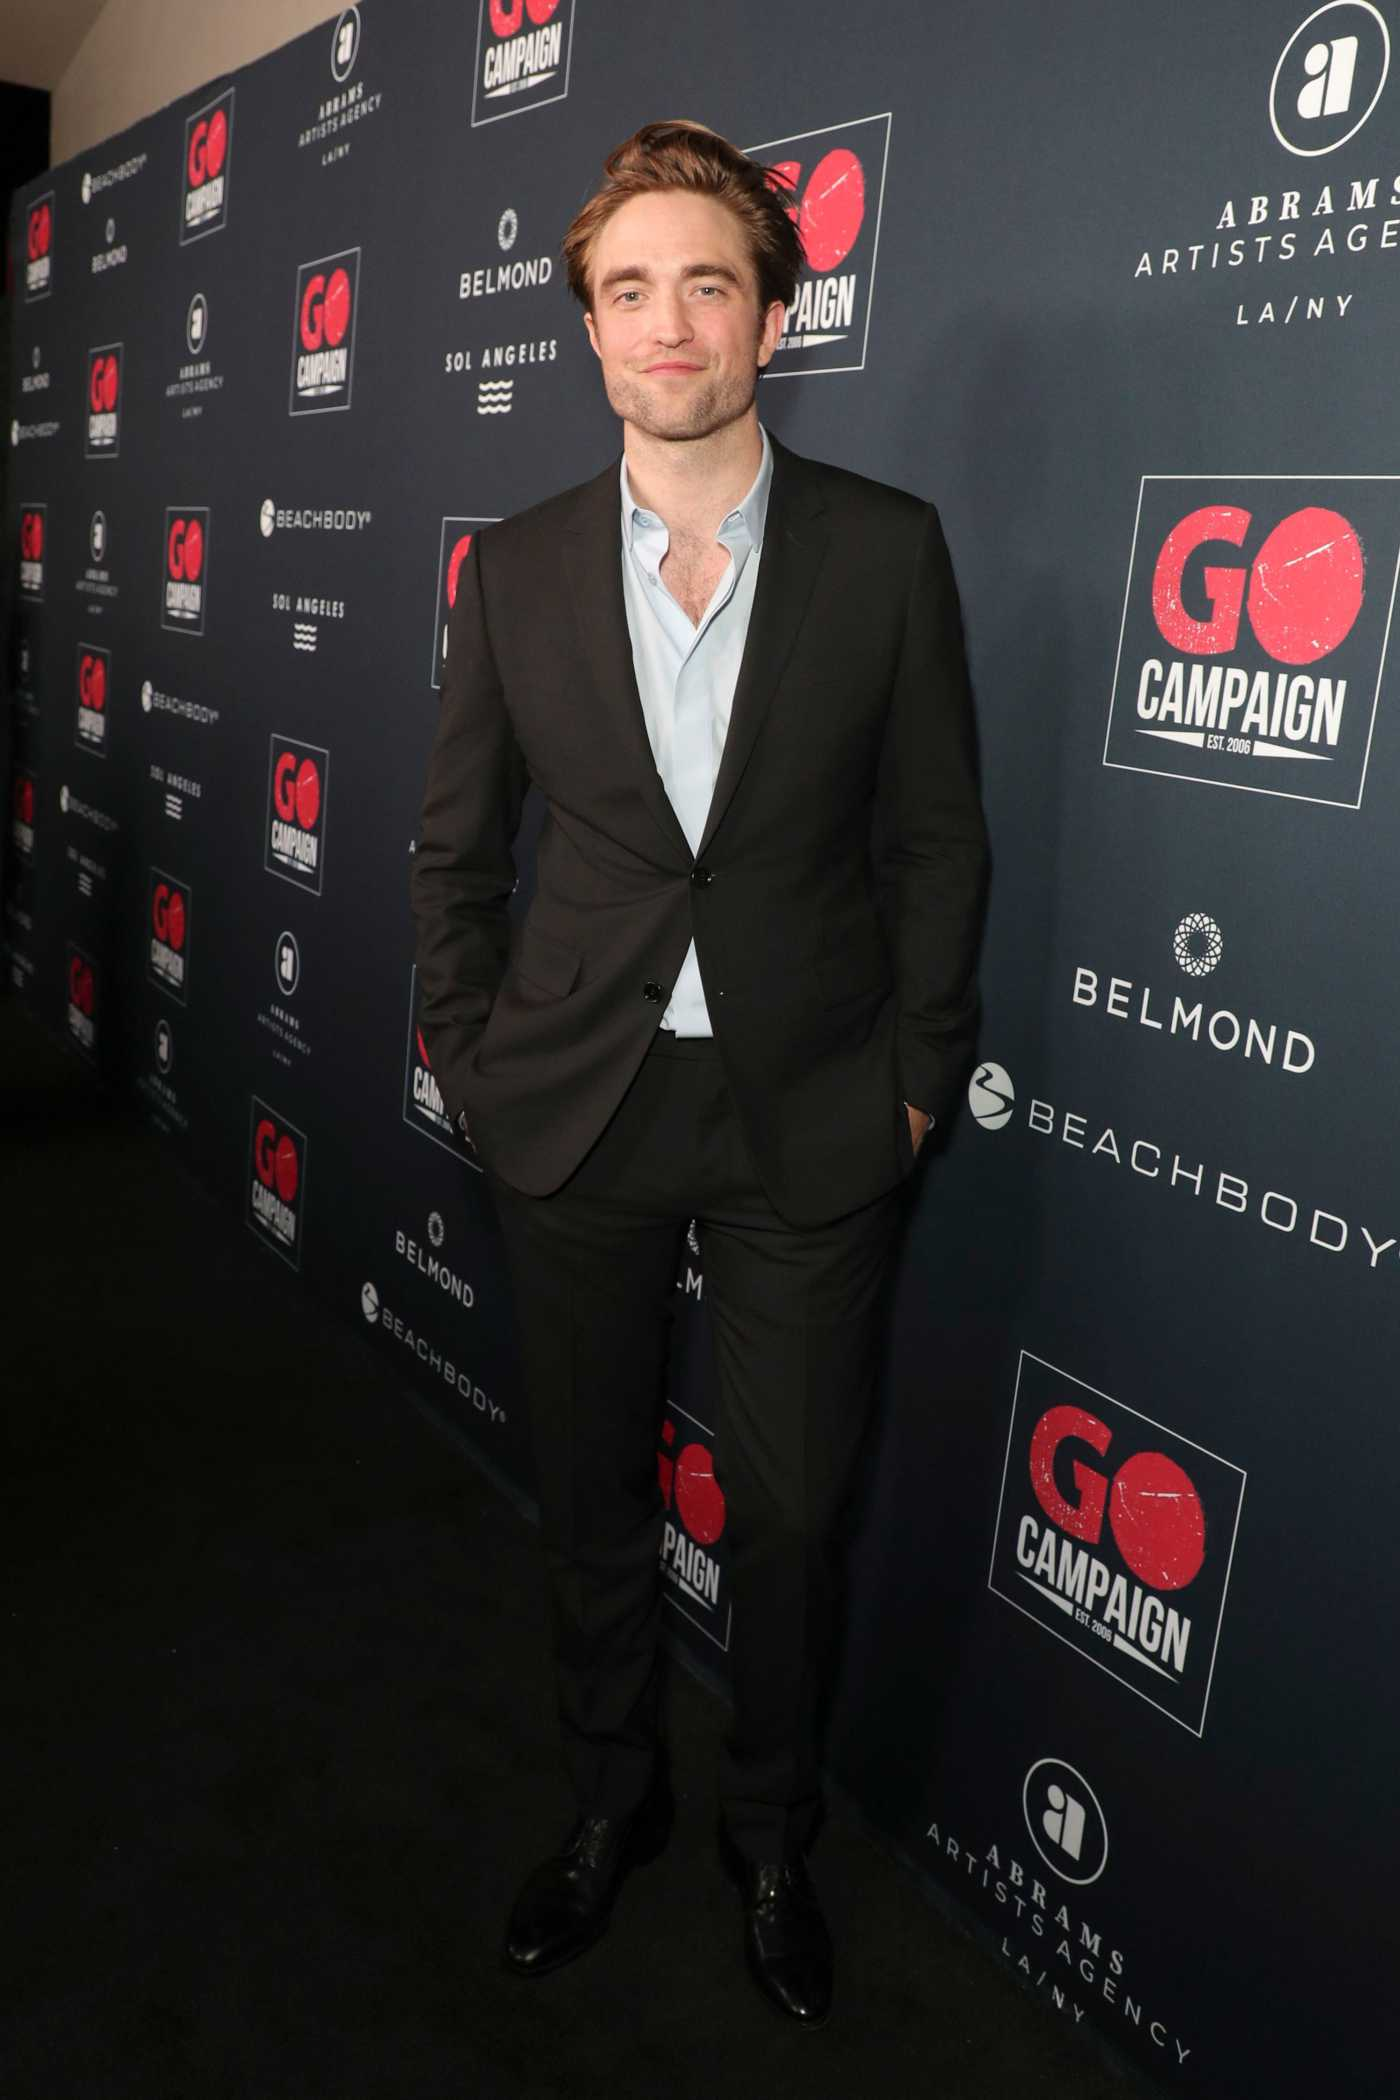 Robert Pattinson Attends GO Campaign's 13th Annual Gala at NeueHouse in Hollywood 11/16/2019